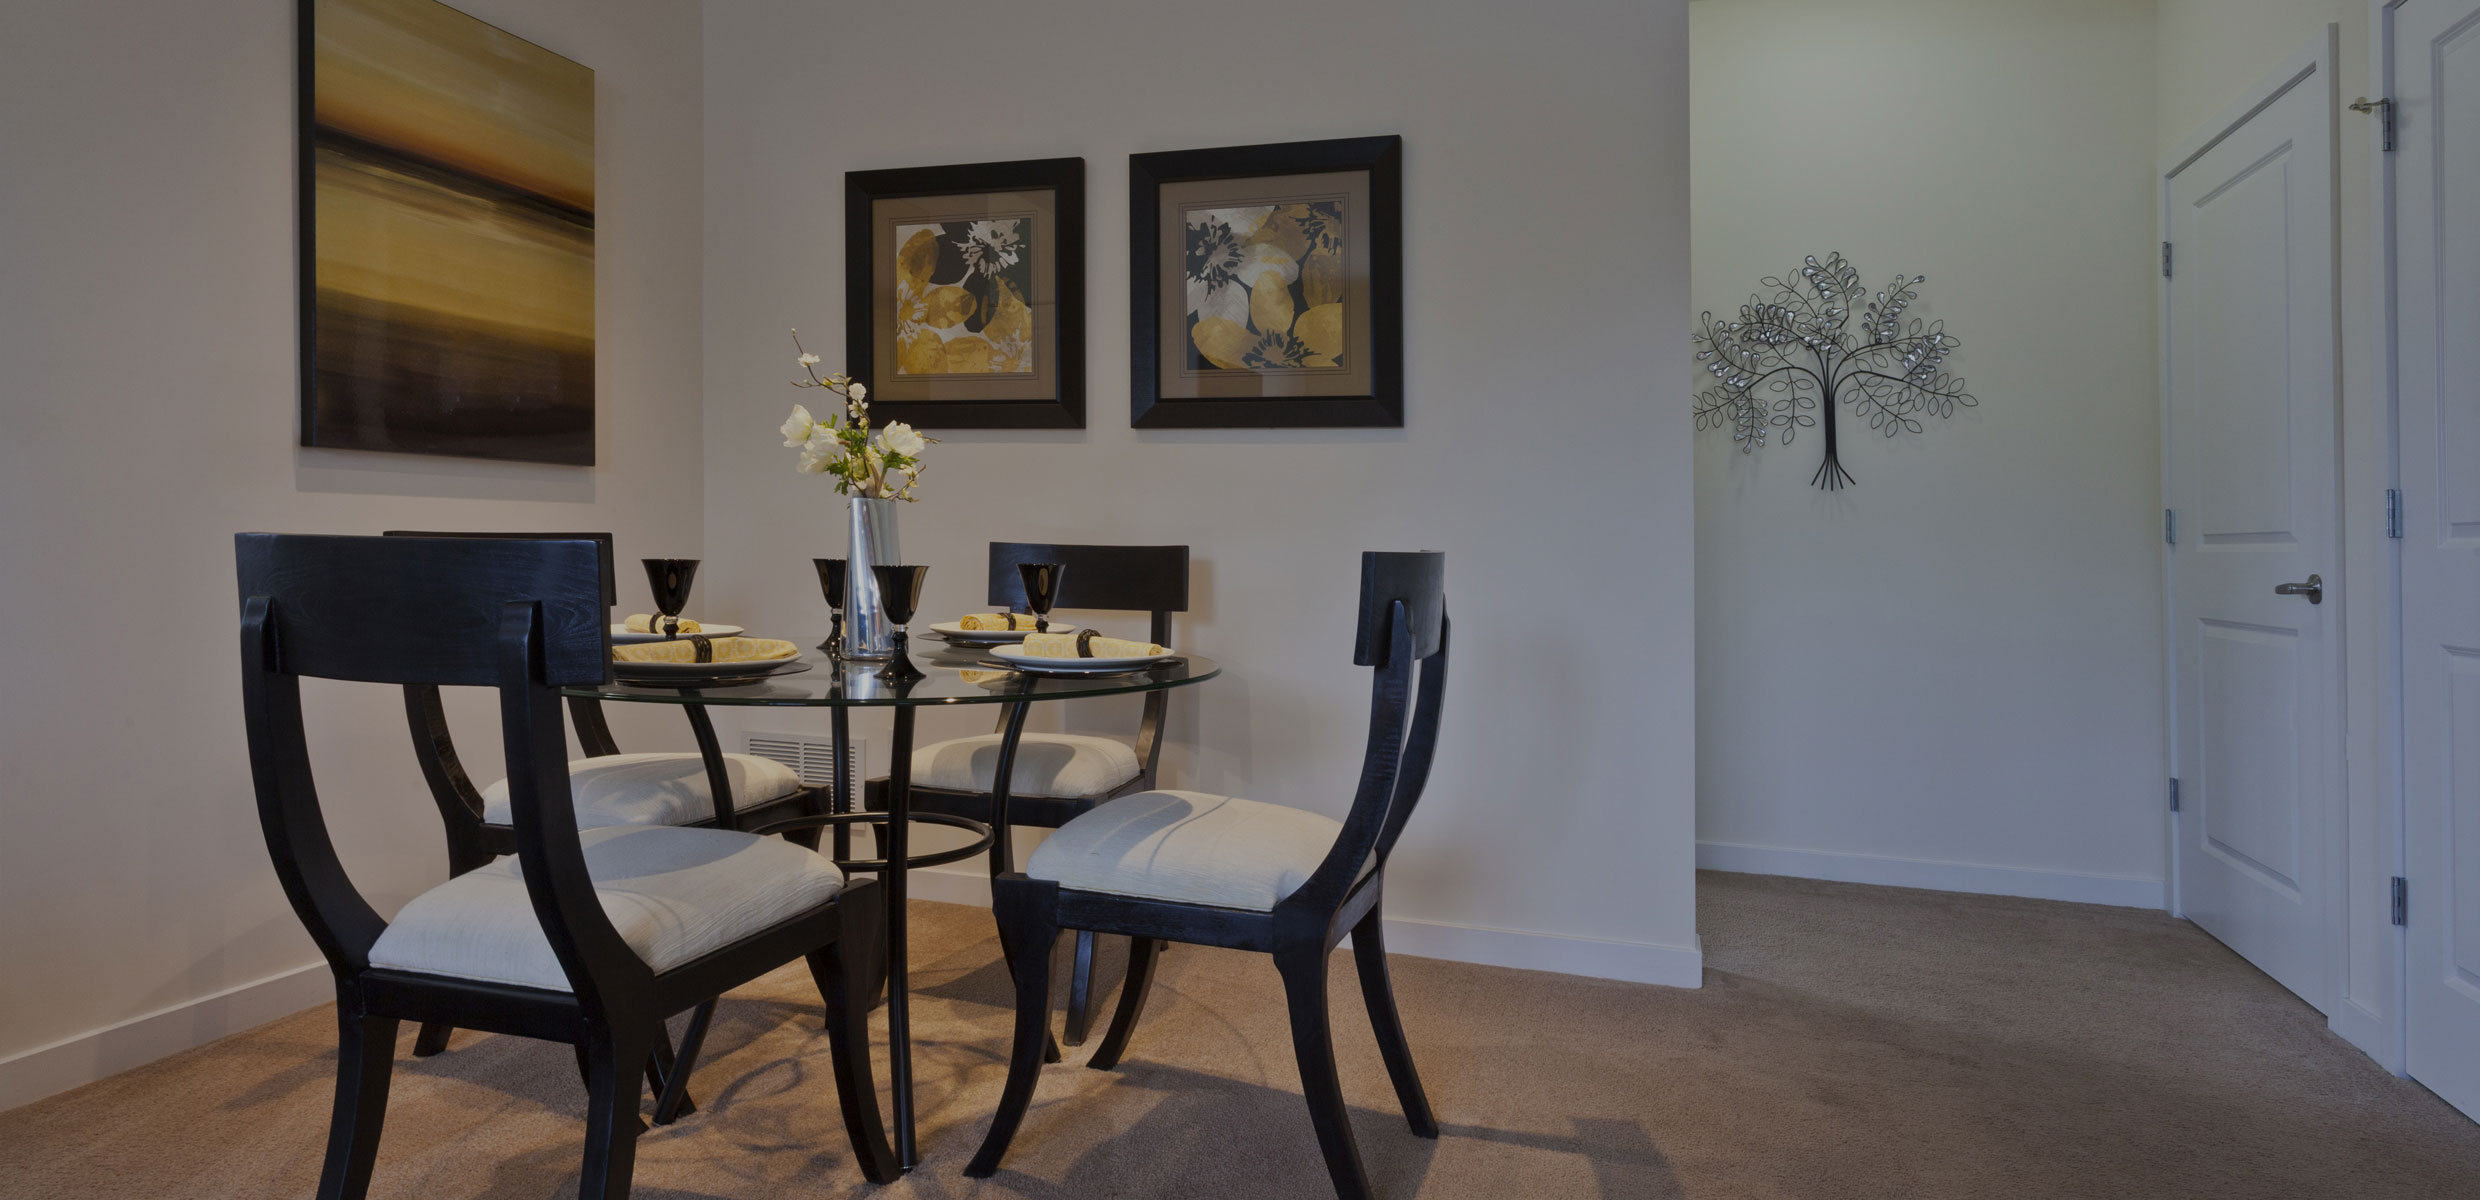 Dwell Cherry Hill Dining Area